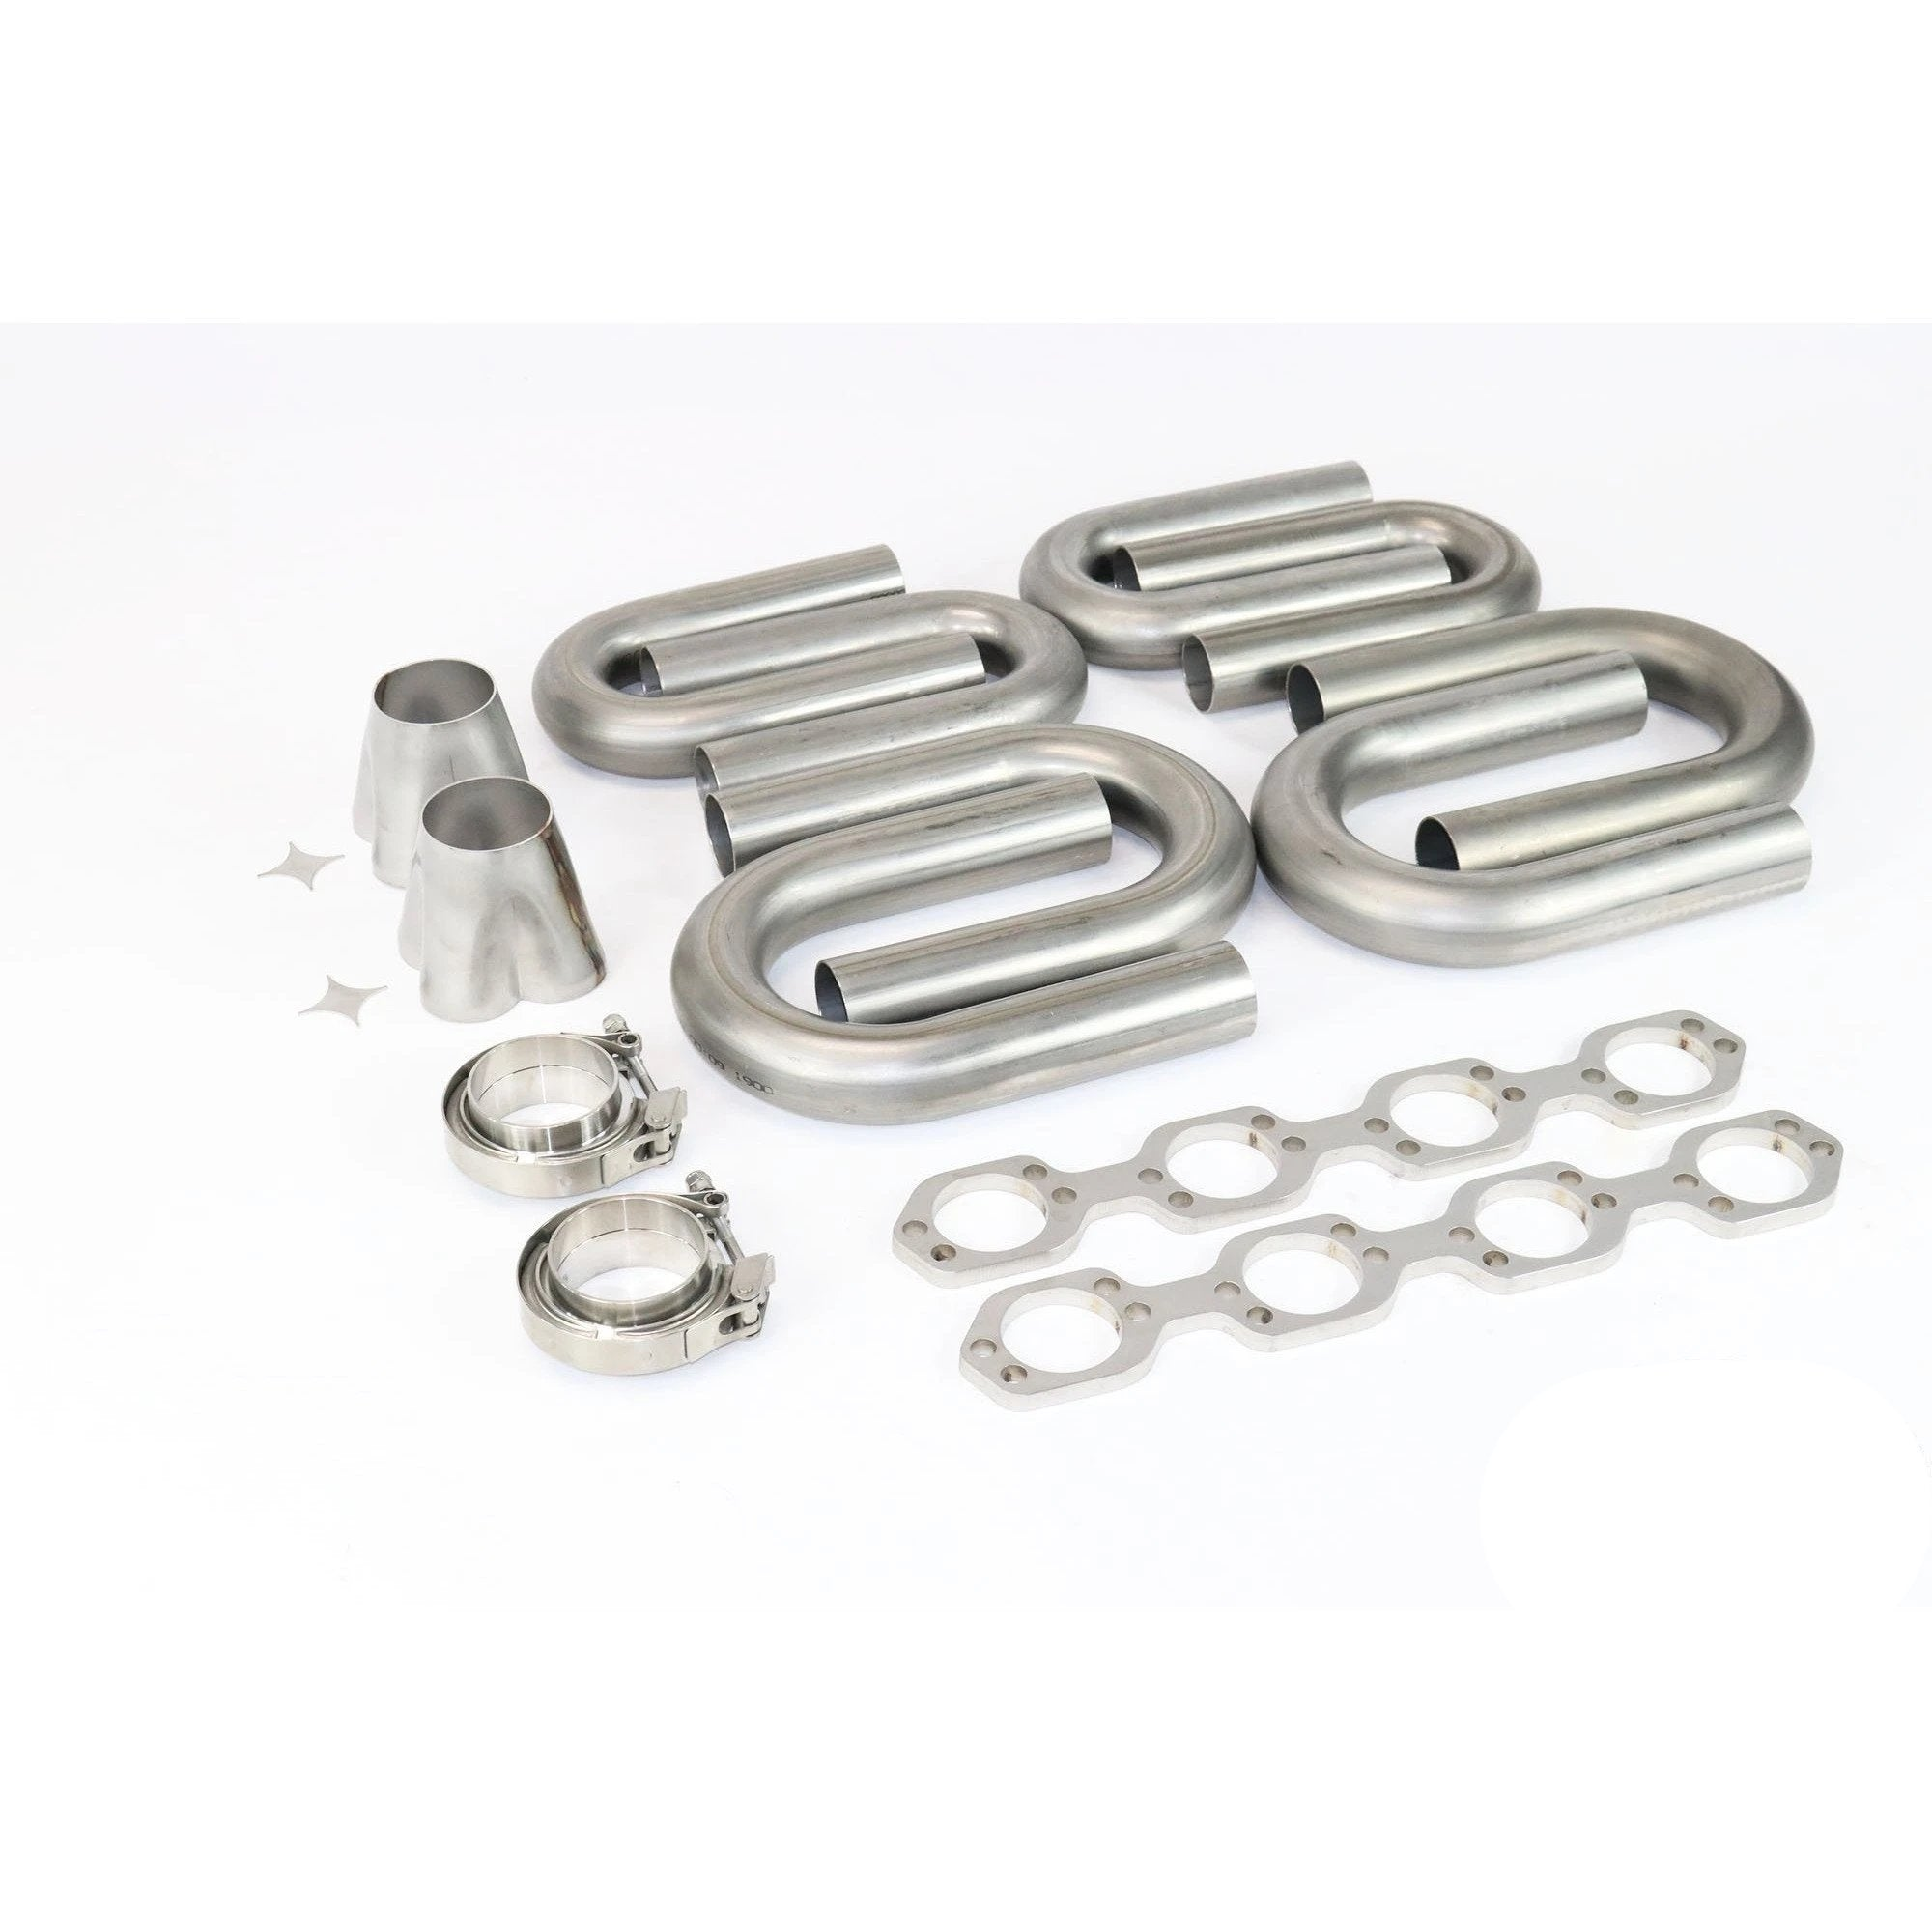 Ford Hi Port SBF 304 Stainless Turbo Header Build Kit 1 7/8-Kit-Motion Raceworks